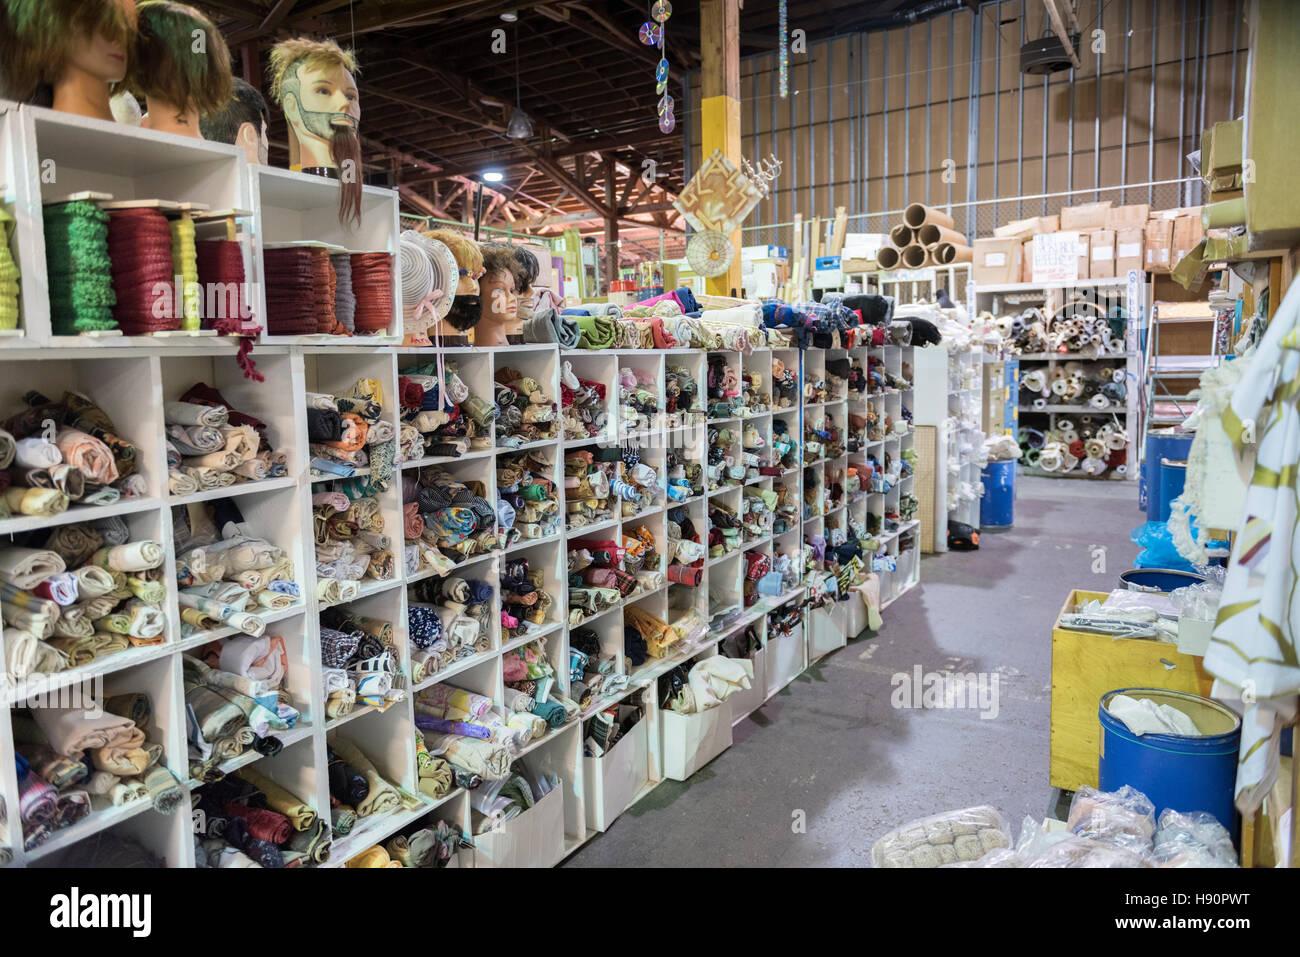 Interior view of Scrap, a creative re-cycling public warehouse for useful materials to reuse in San Francisco, California, - Stock Image